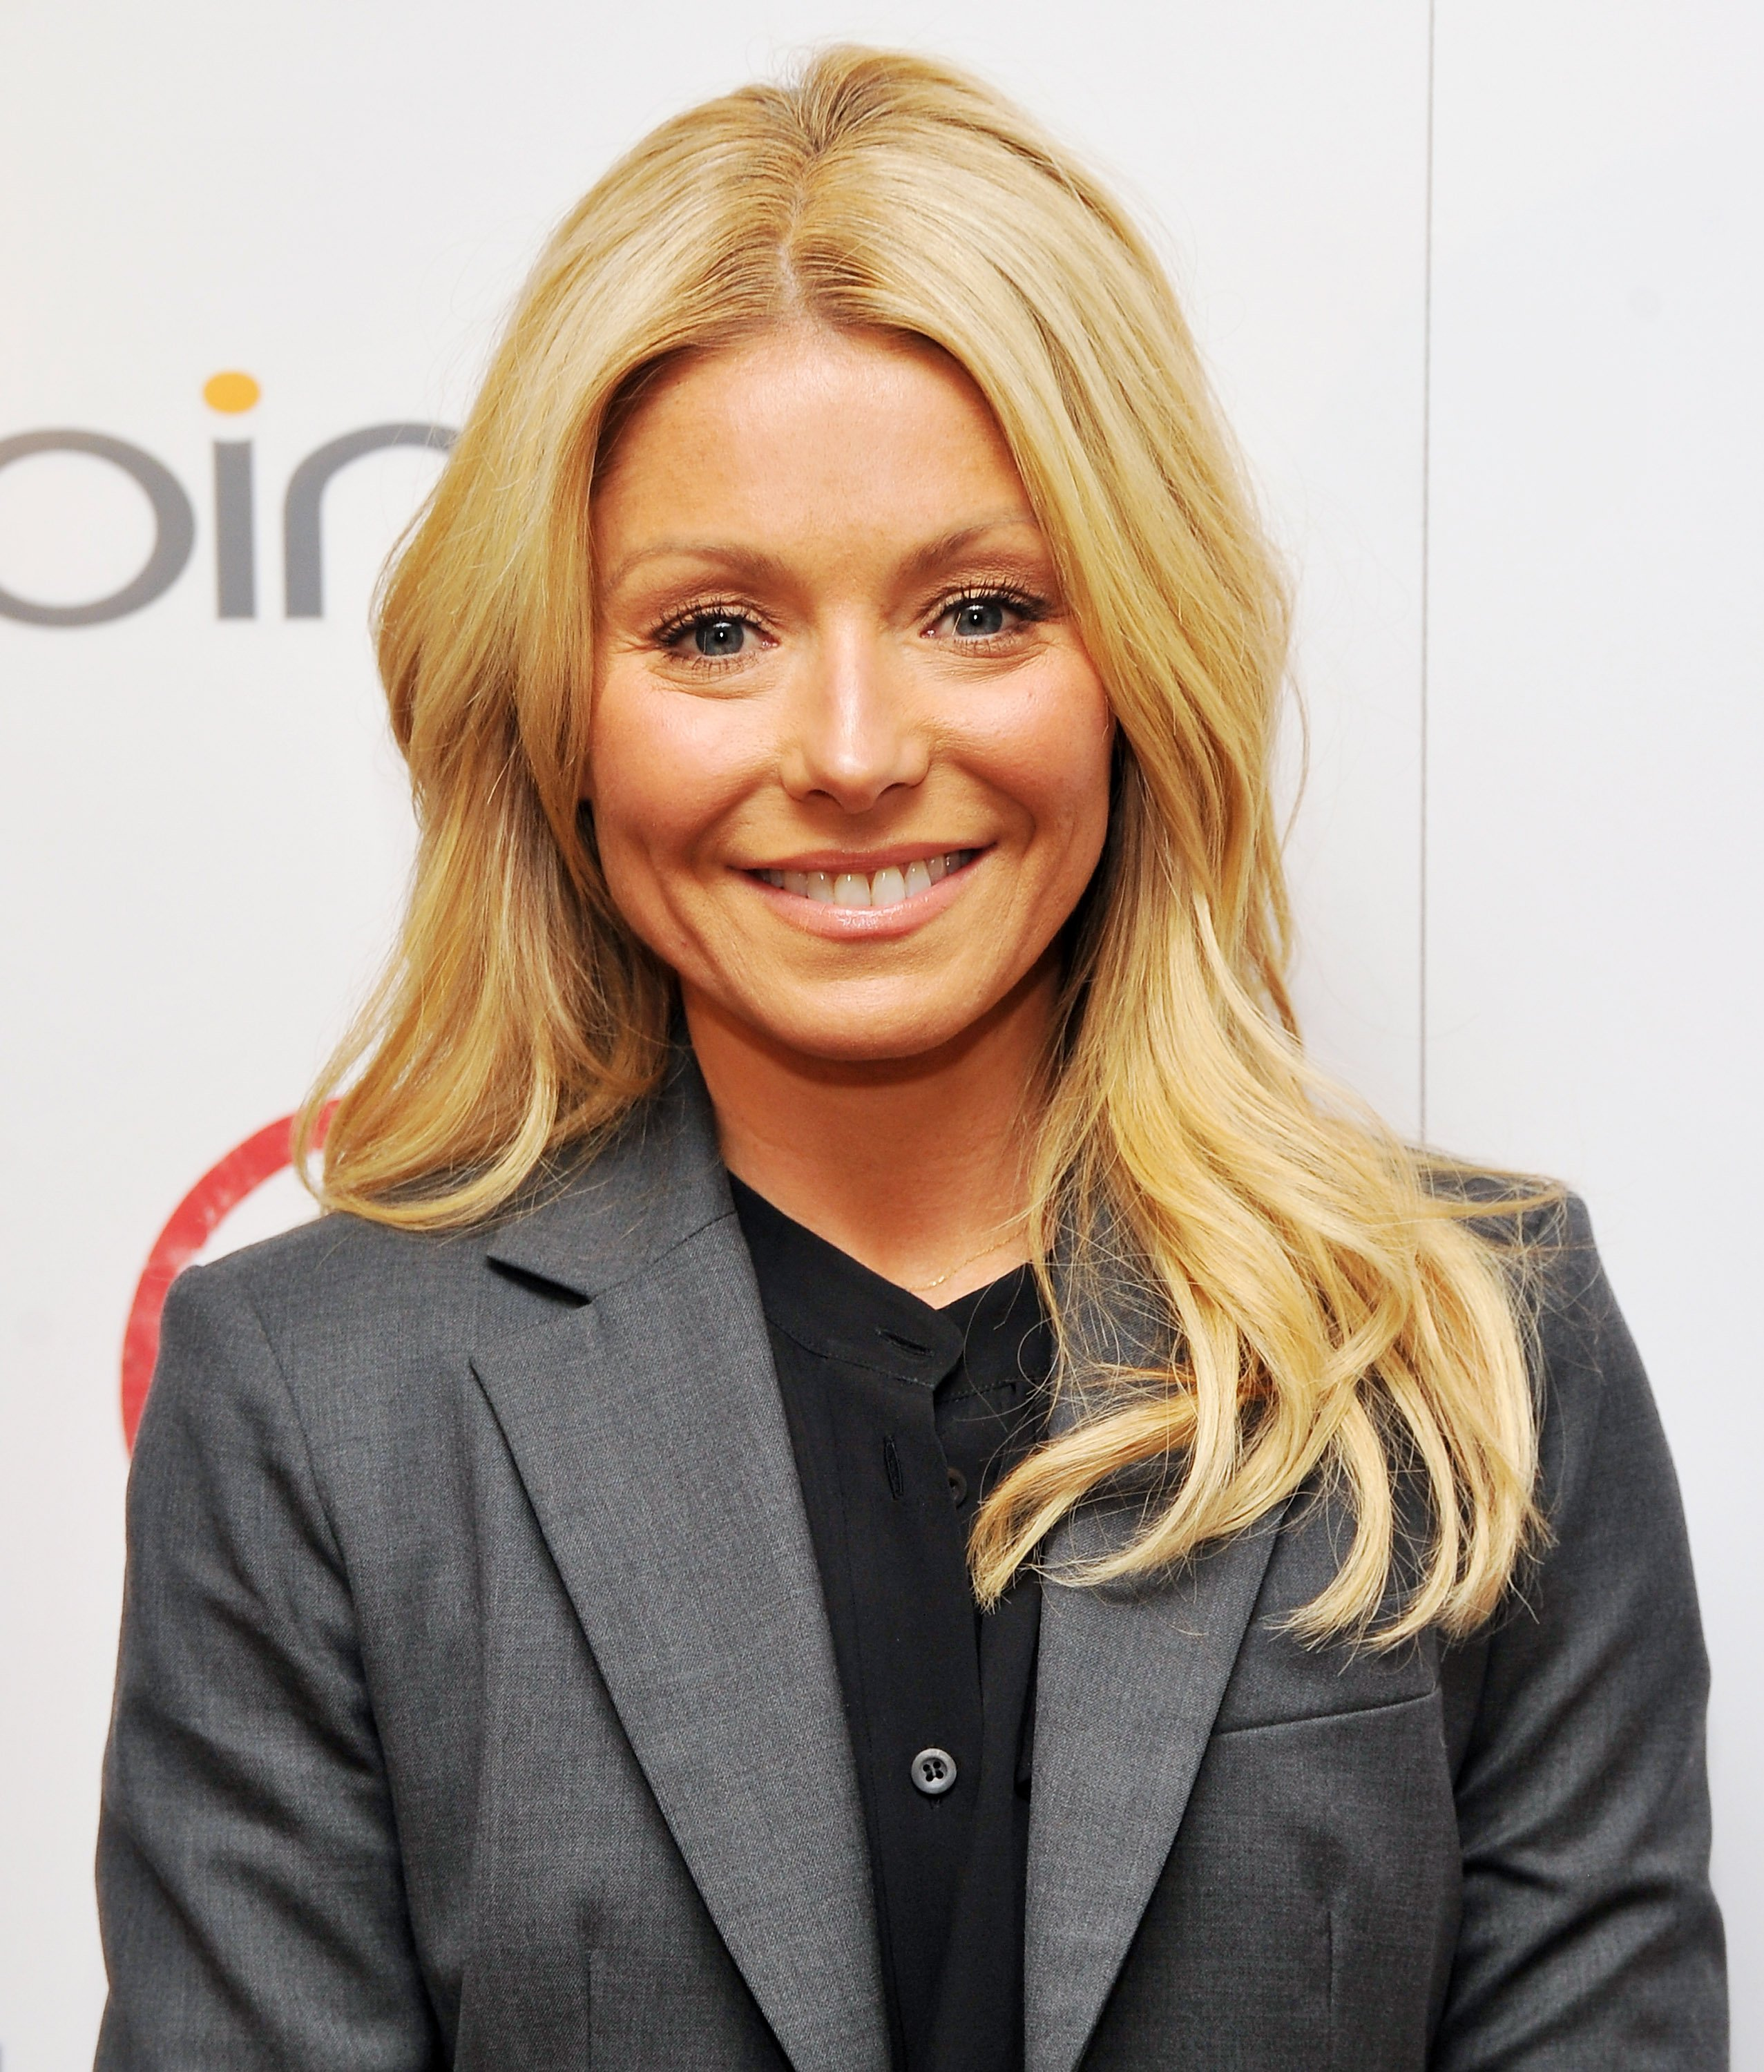 Kelly Ripa | Quelle: Getty Images